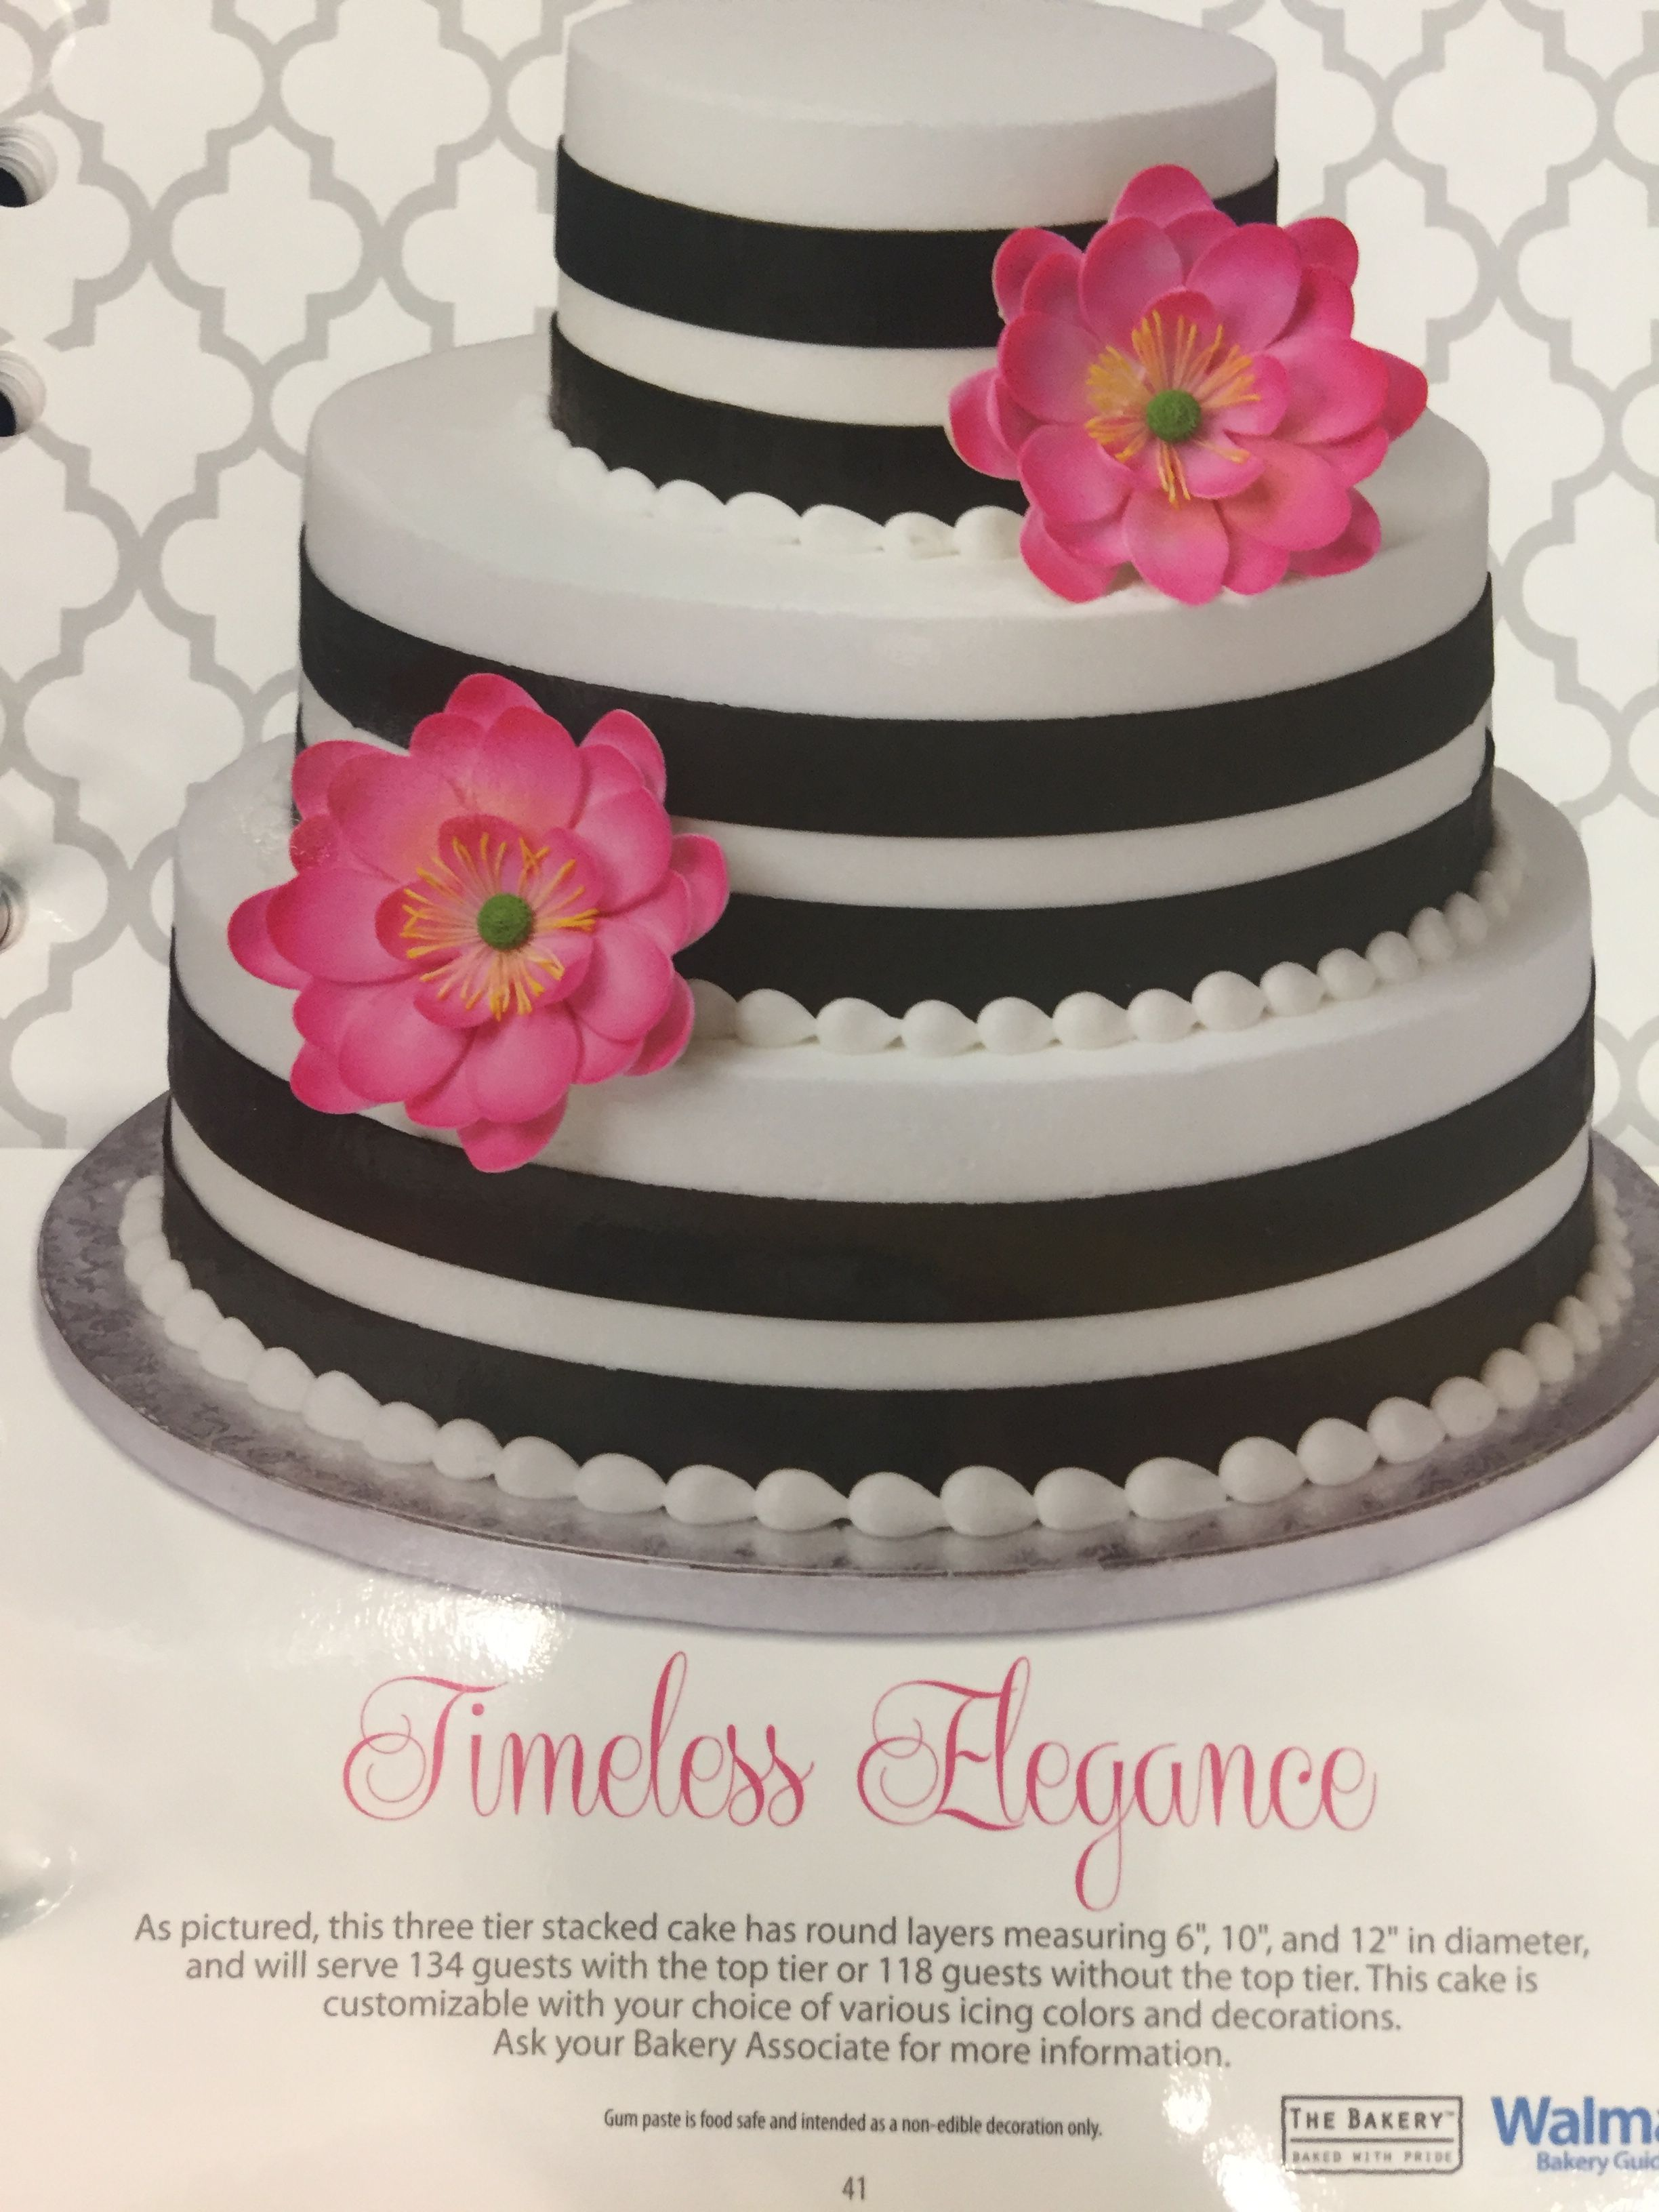 Walmart Cake From Their Book